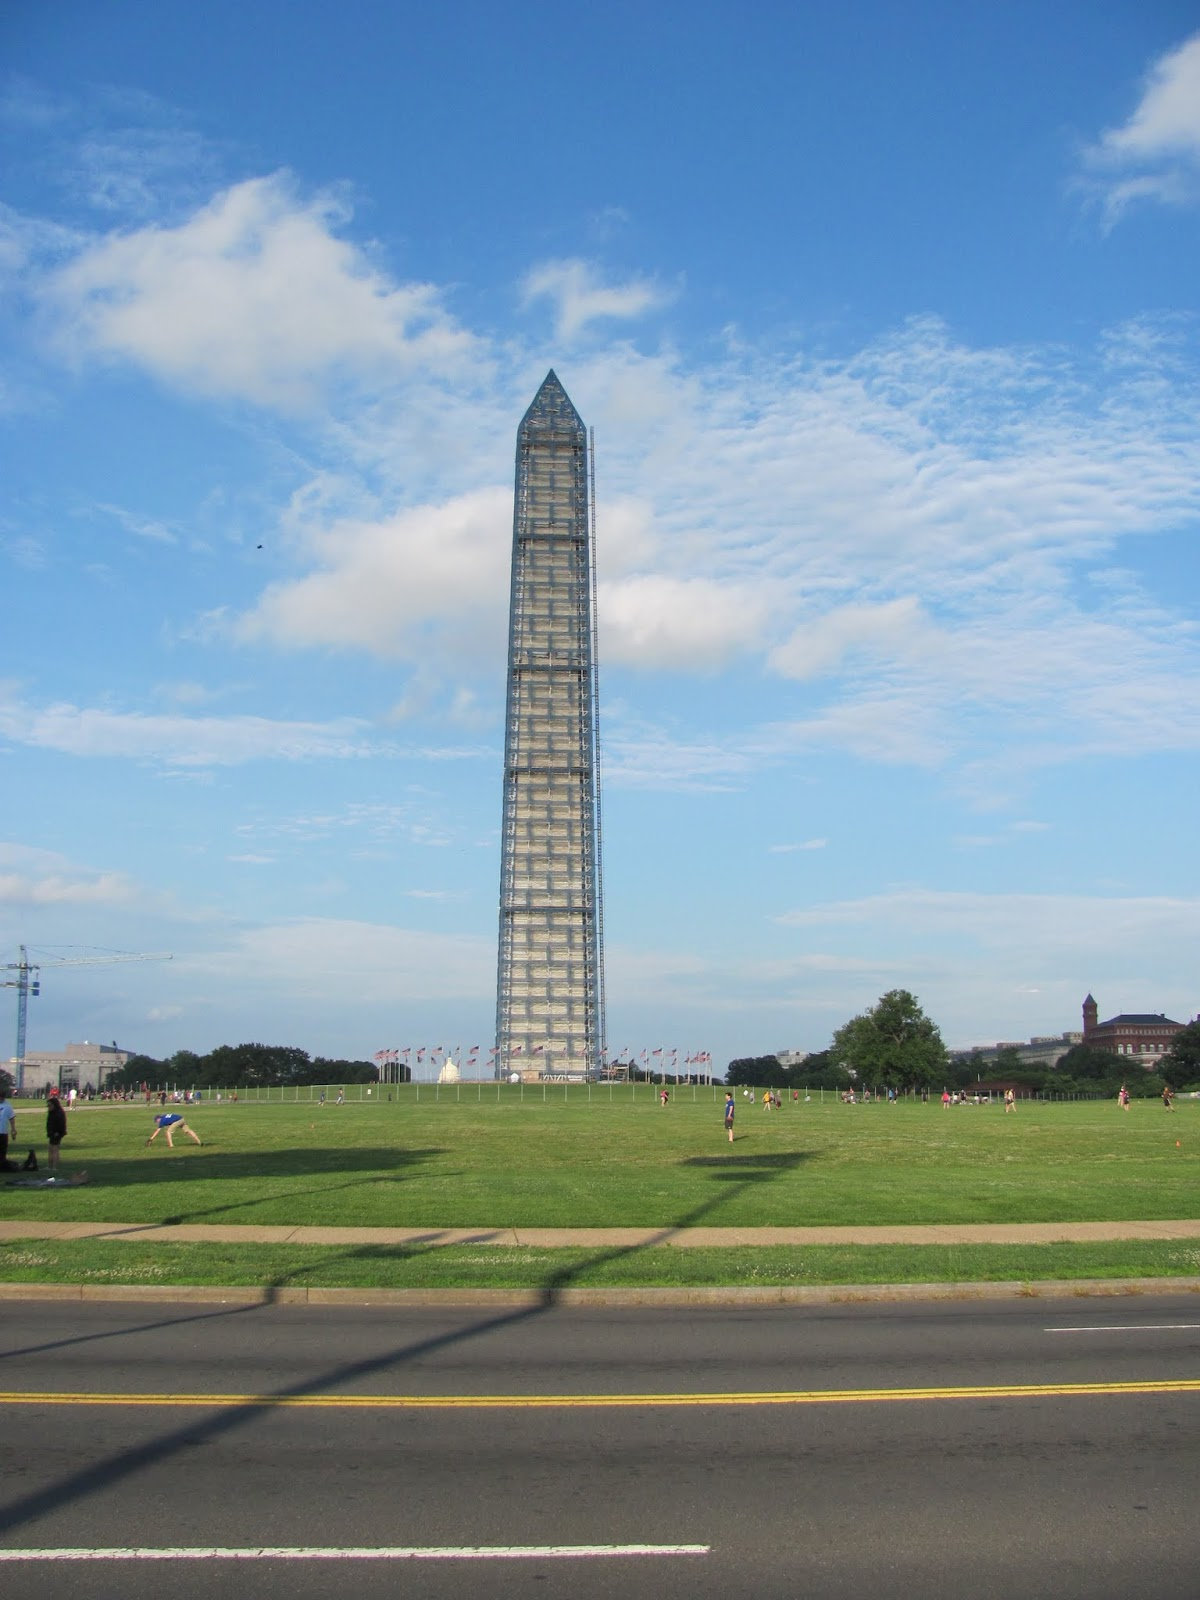 The Washington Monument is pictured covered with repair scaffolding in Washington, DC